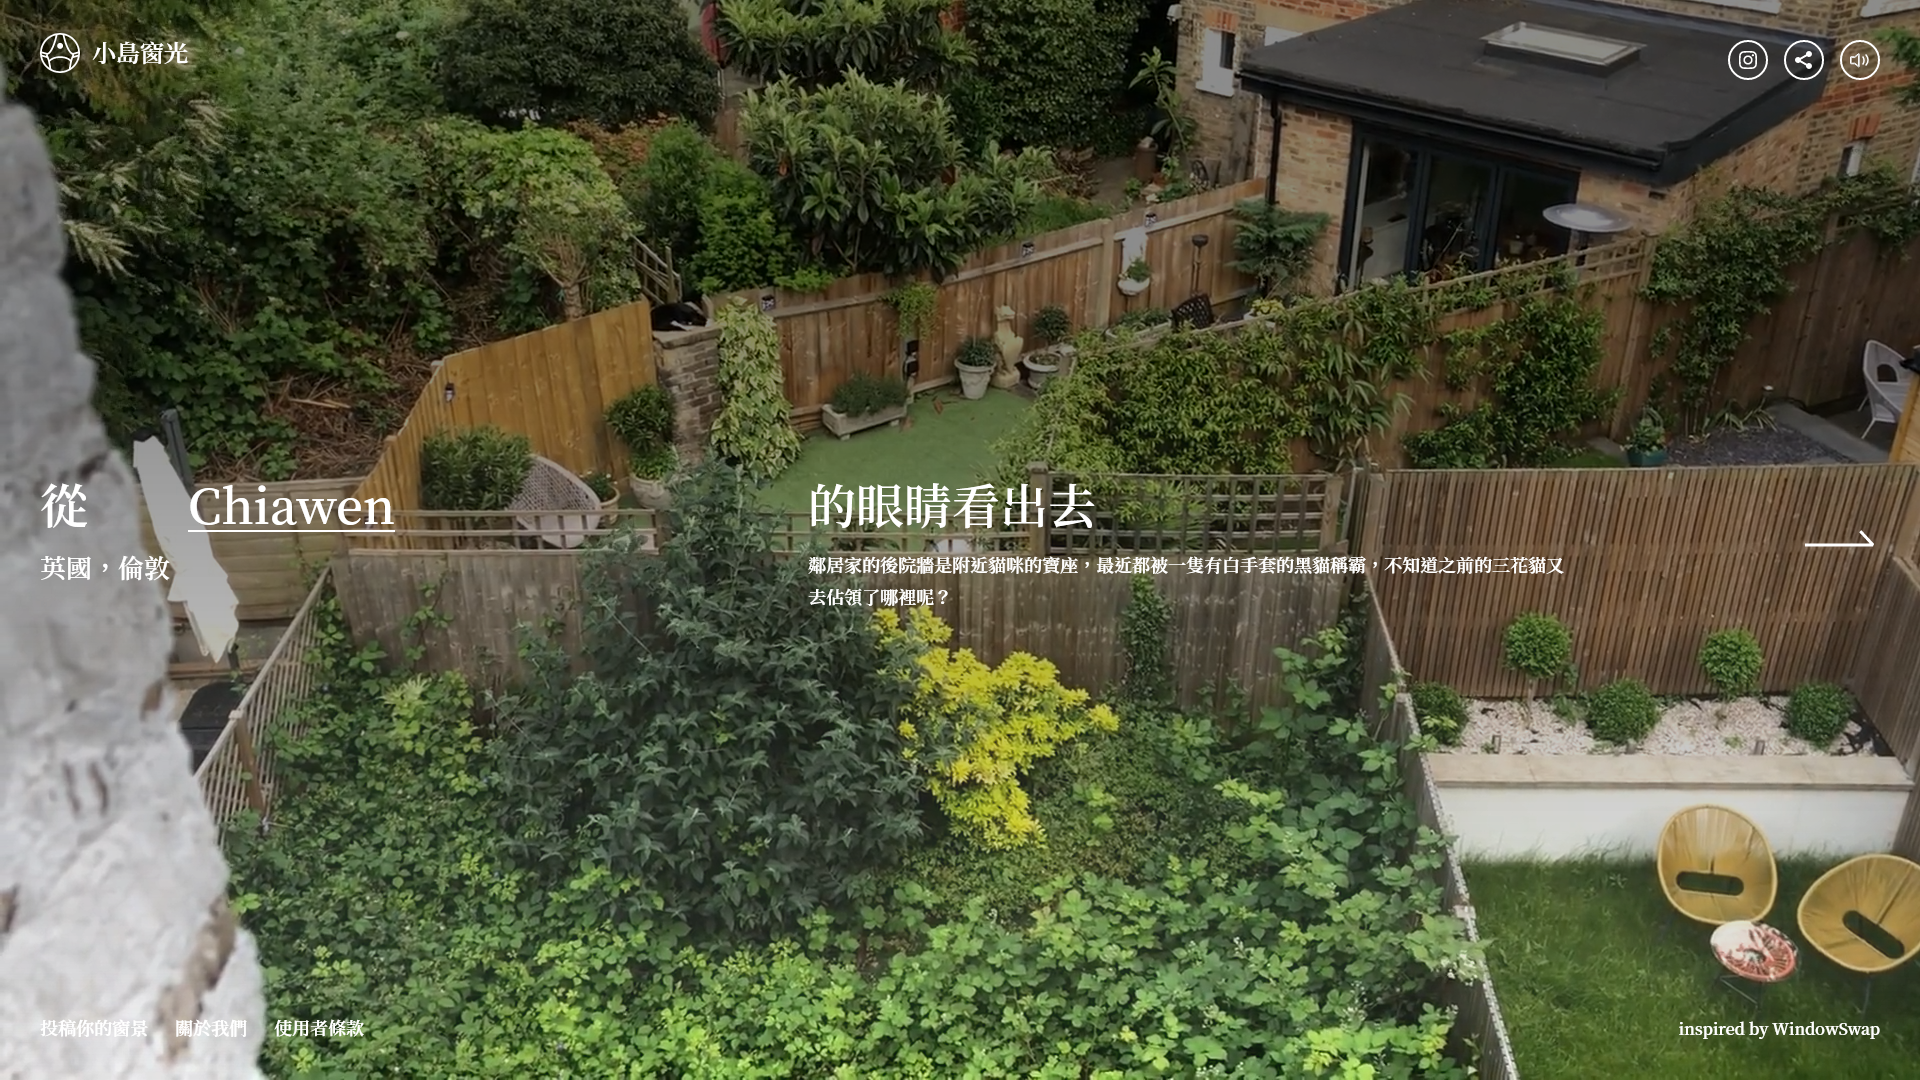 a screenshot of the website, the background image is backyard with trees, plants, and fences.